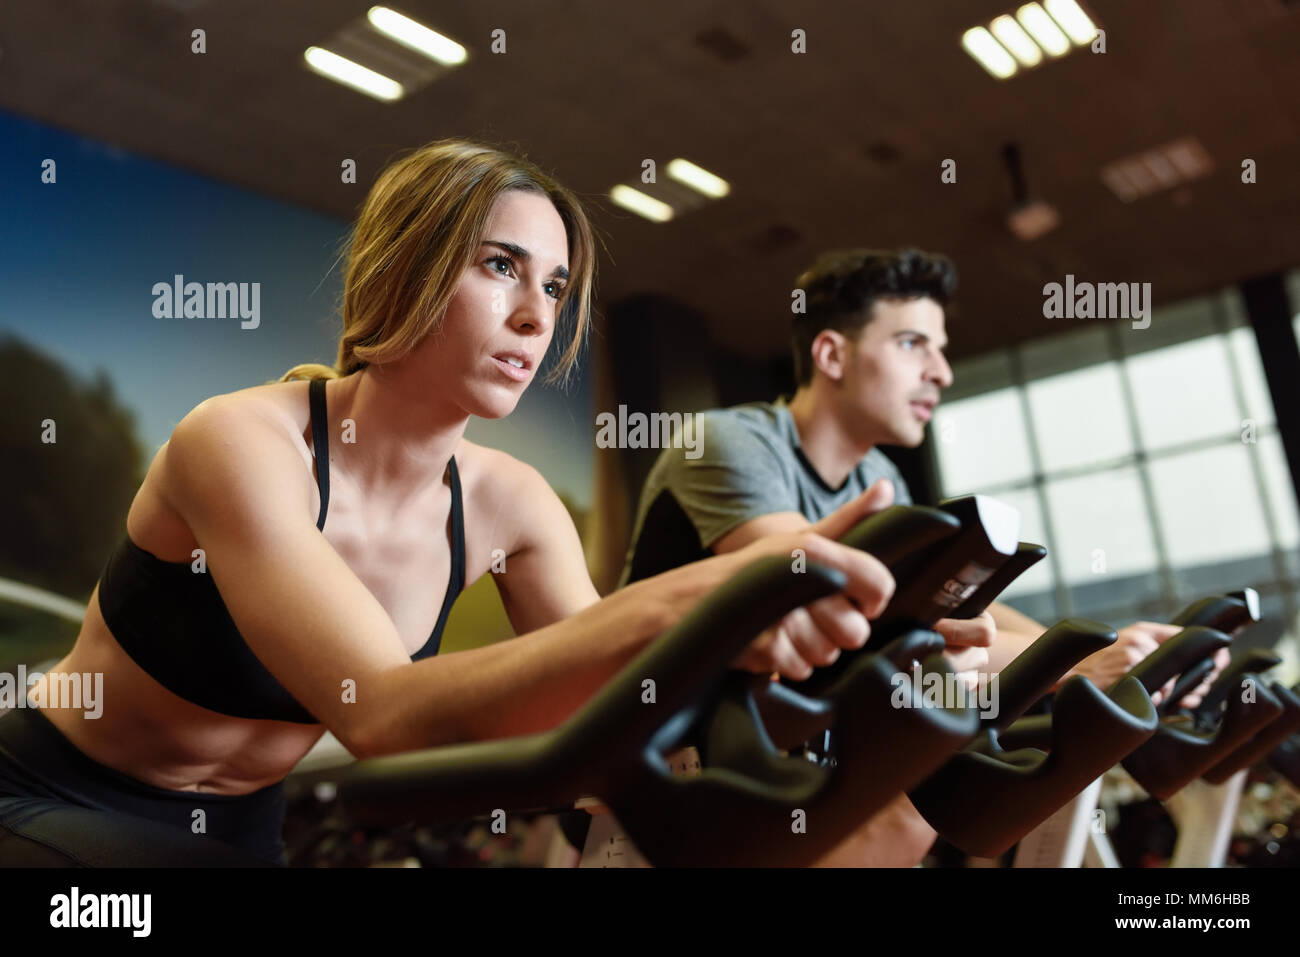 Attractive woman and man biking in the gym, exercising legs doing cardio workout cycling bikes. Couple in a spinning class wearing sportswear. - Stock Image